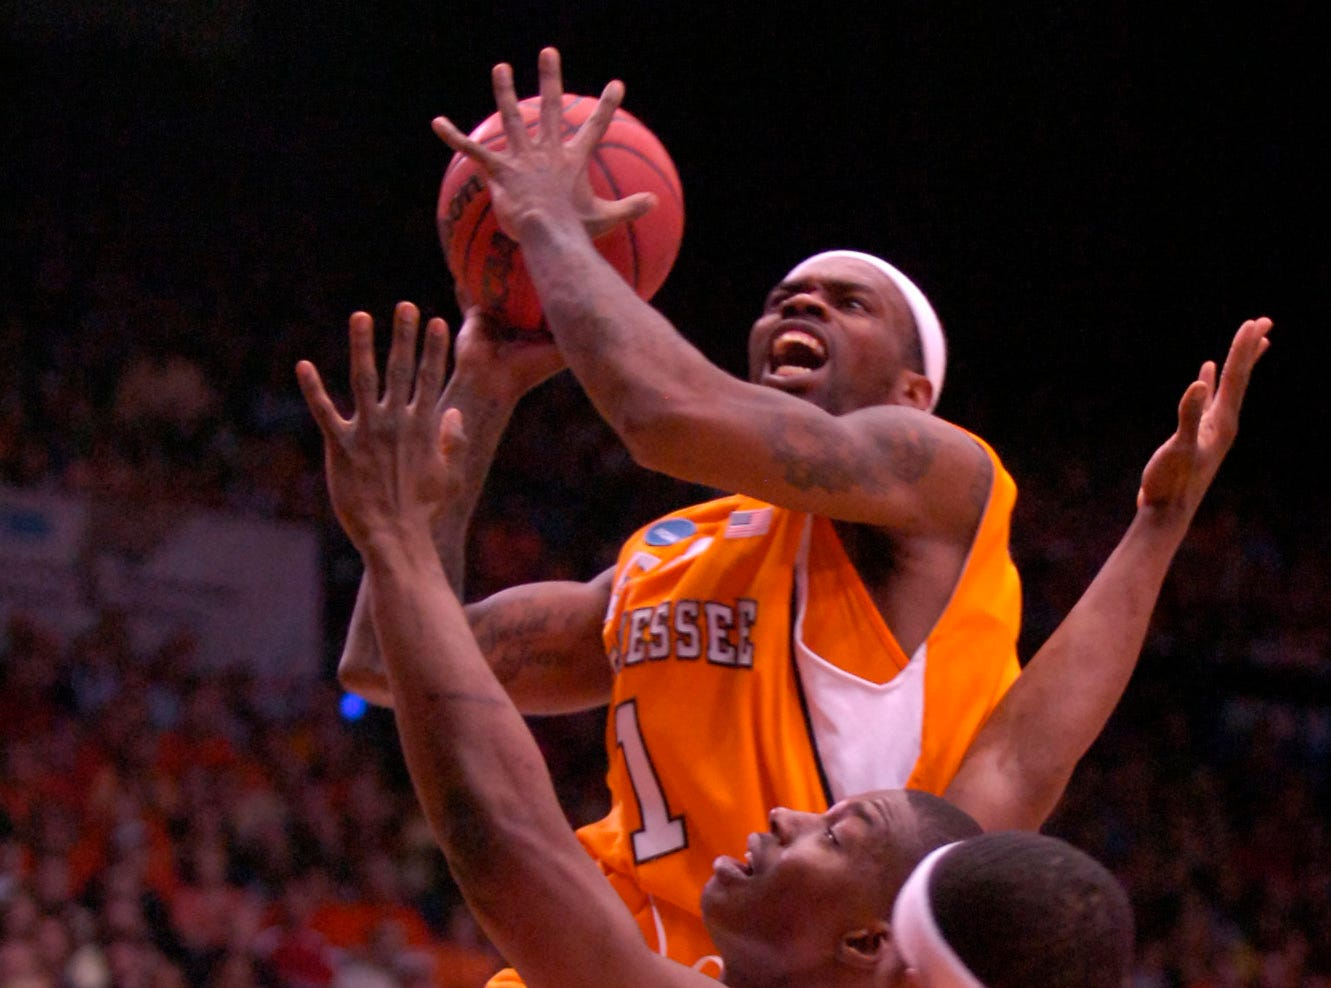 Tennessee's Tyler Smith gets to the basket against Oklahoma State during the first round of the 2009 NCAA tournament in Dayton, OH on Friday. UT lost the game 77-75 ending their post season play.